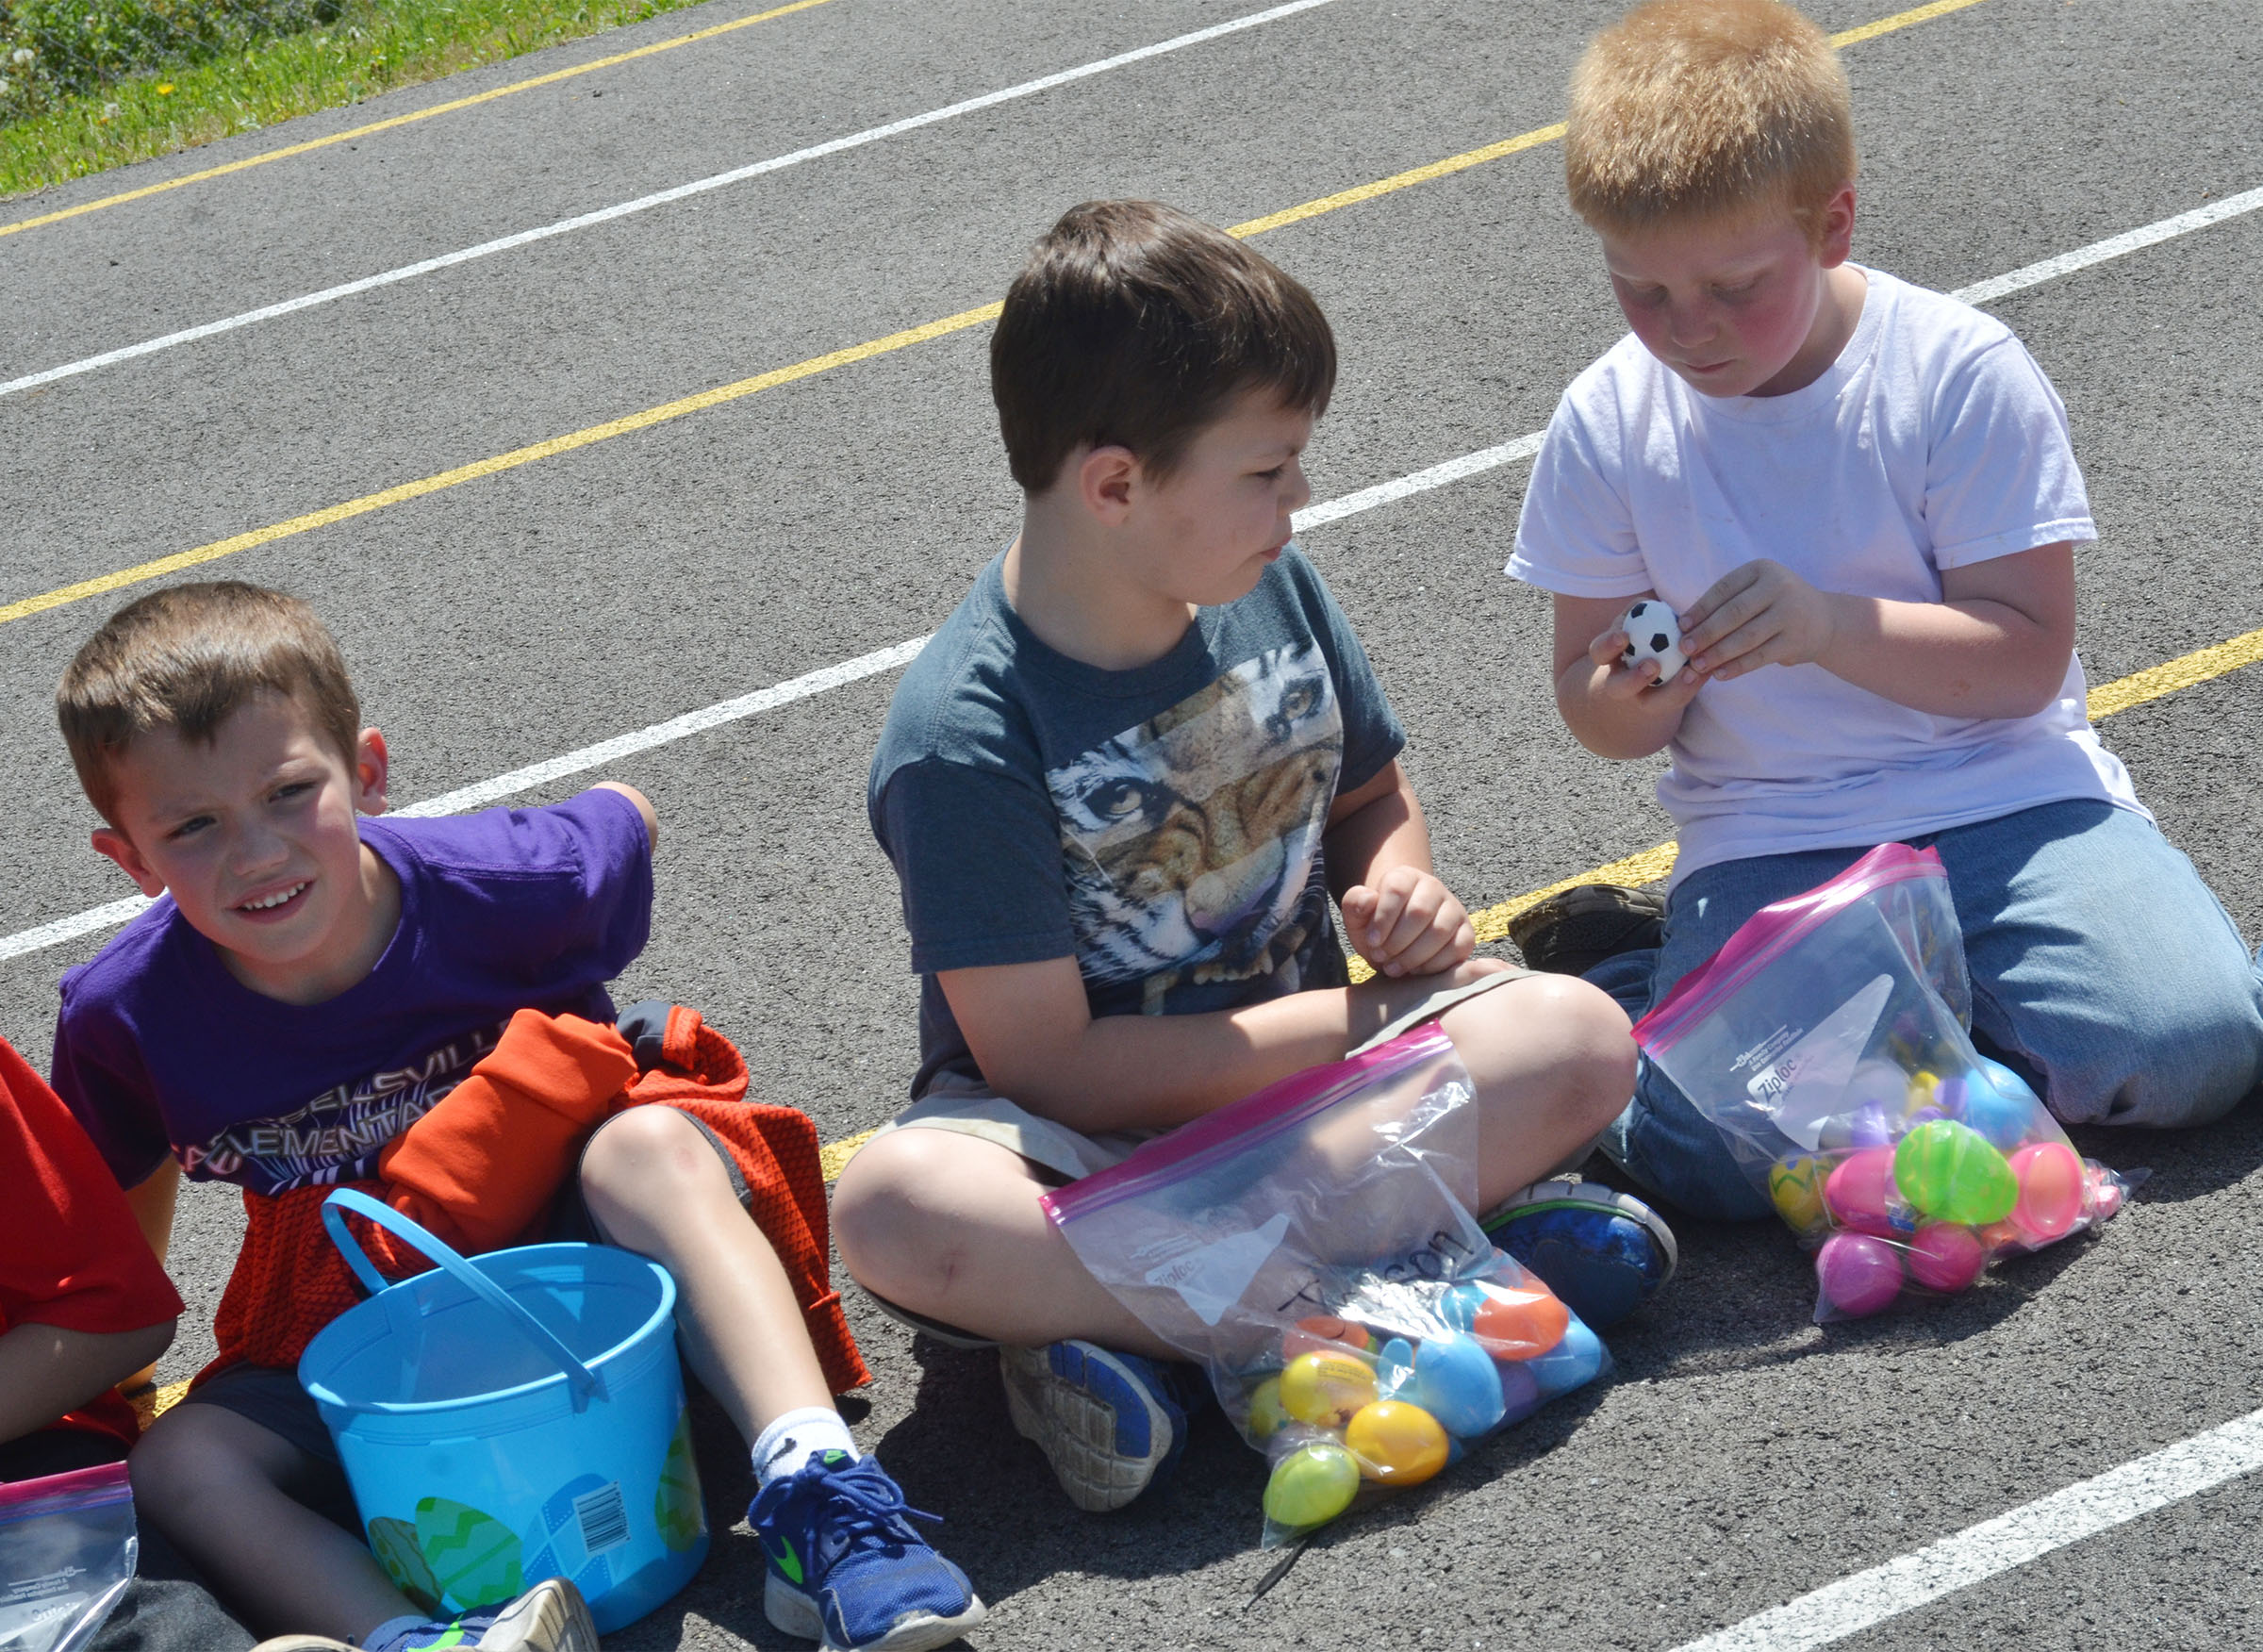 CES first-graders, from left, Owen Skaggs, Jaxson Hunt and Ben Parrott look inside their Easter eggs.